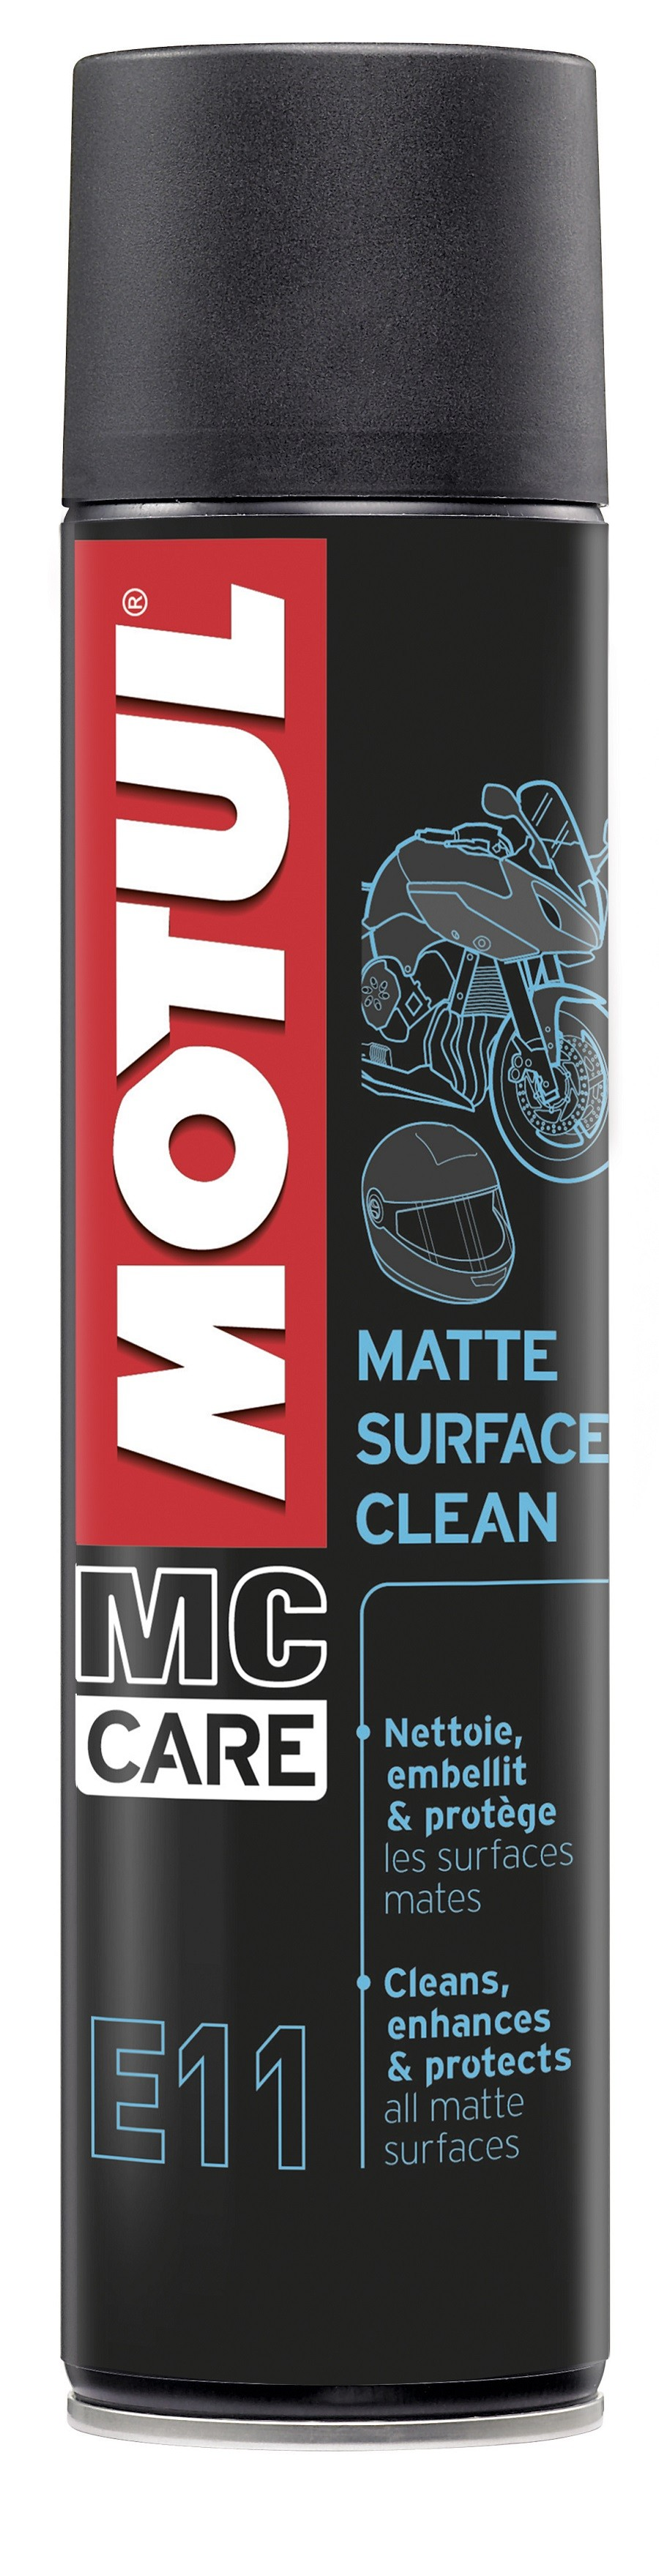 E11 Matte Surface Clean